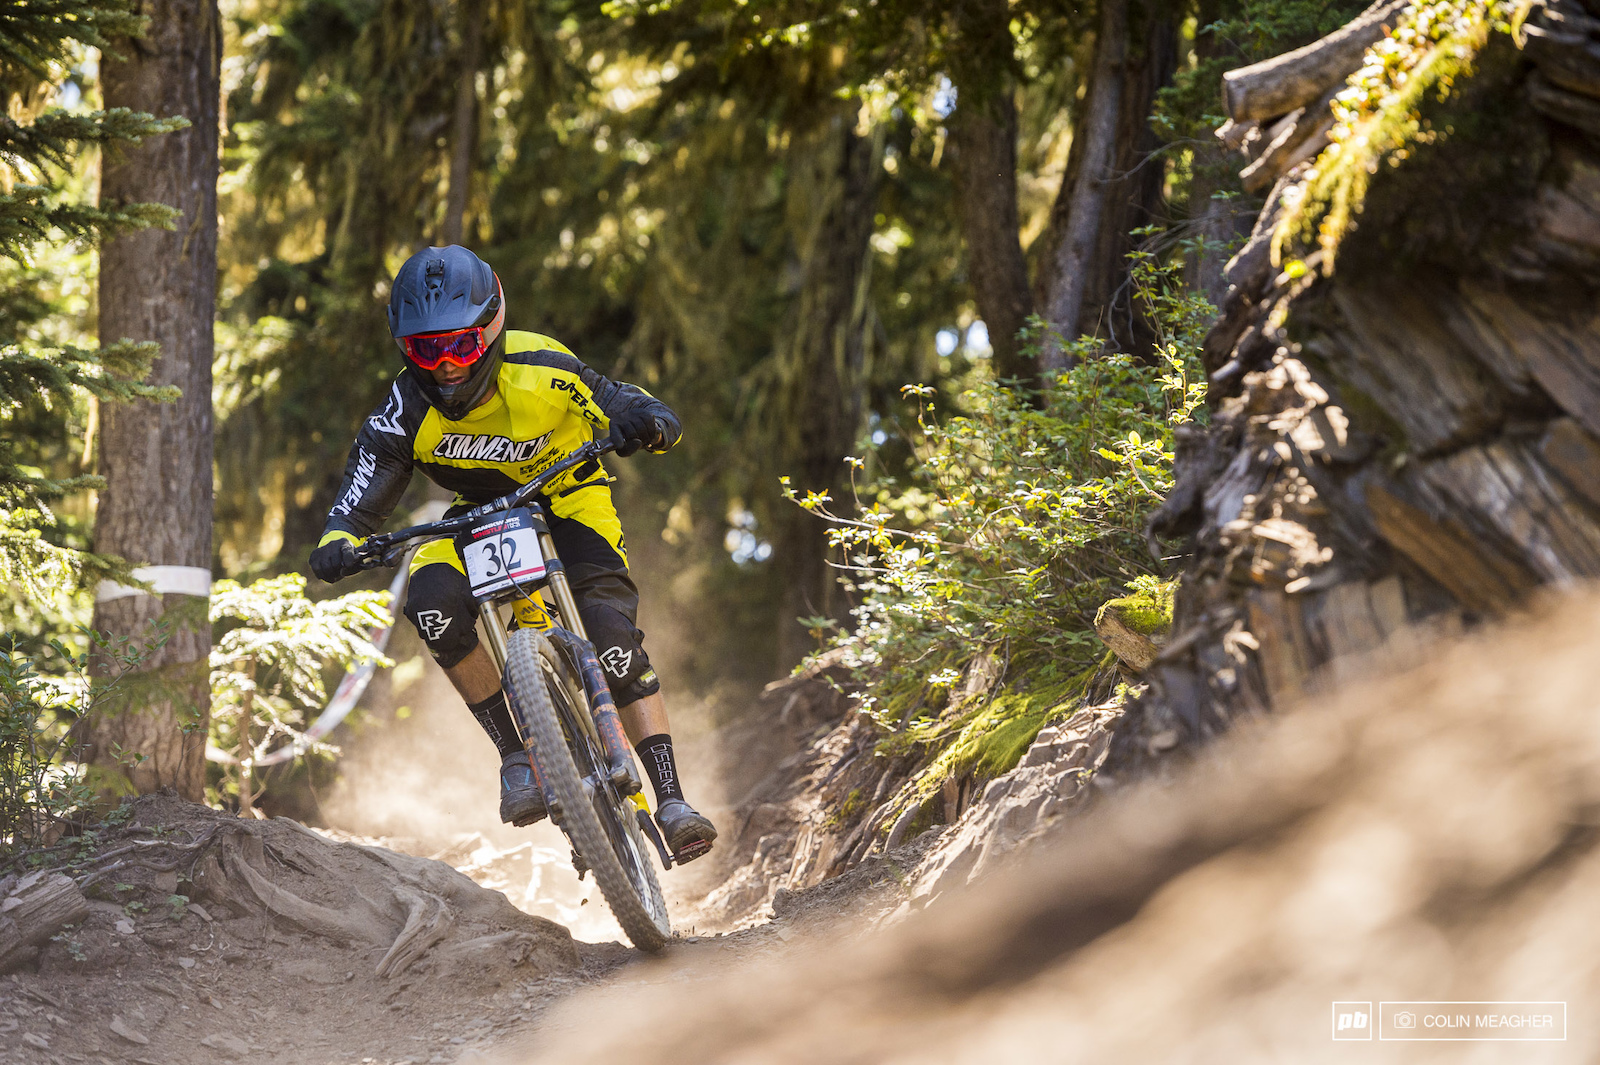 Not so sweet a day for Whistler s DH Freerider Remy Metailler twenty sixth place on his home turf.